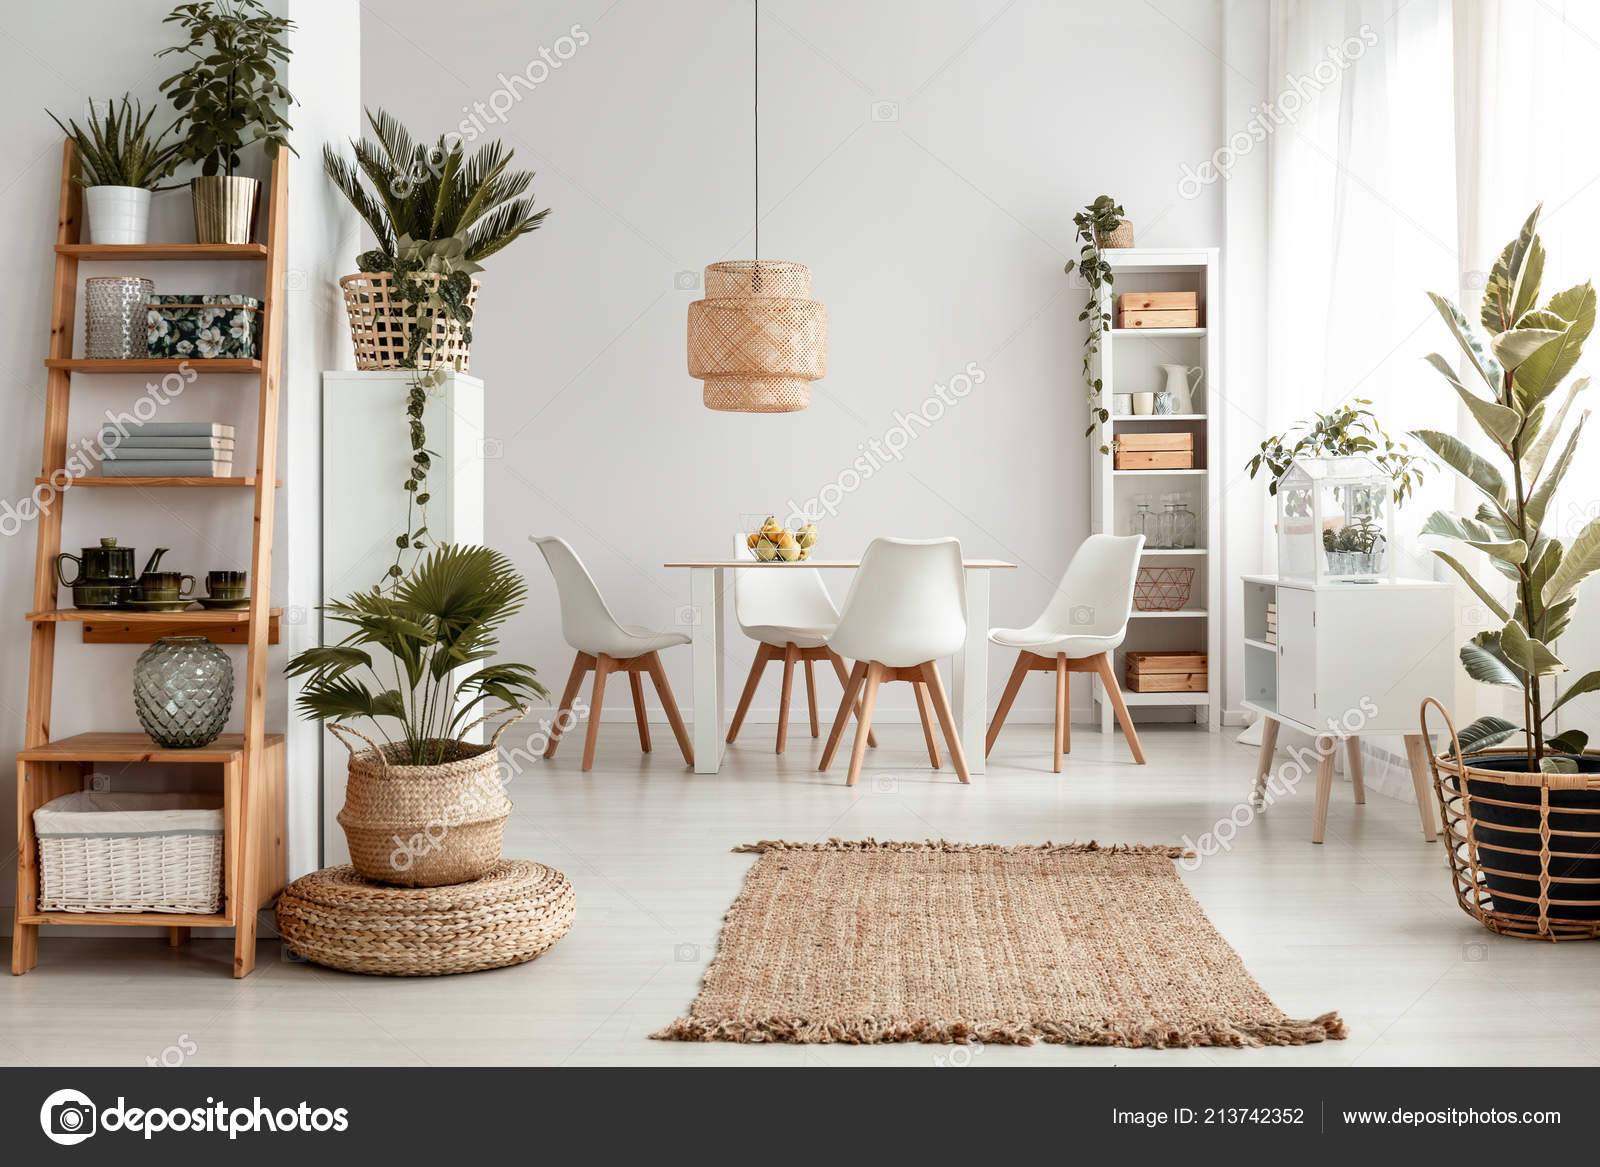 Plants Shelves Rug White Apartment Interior Chairs Dining ...